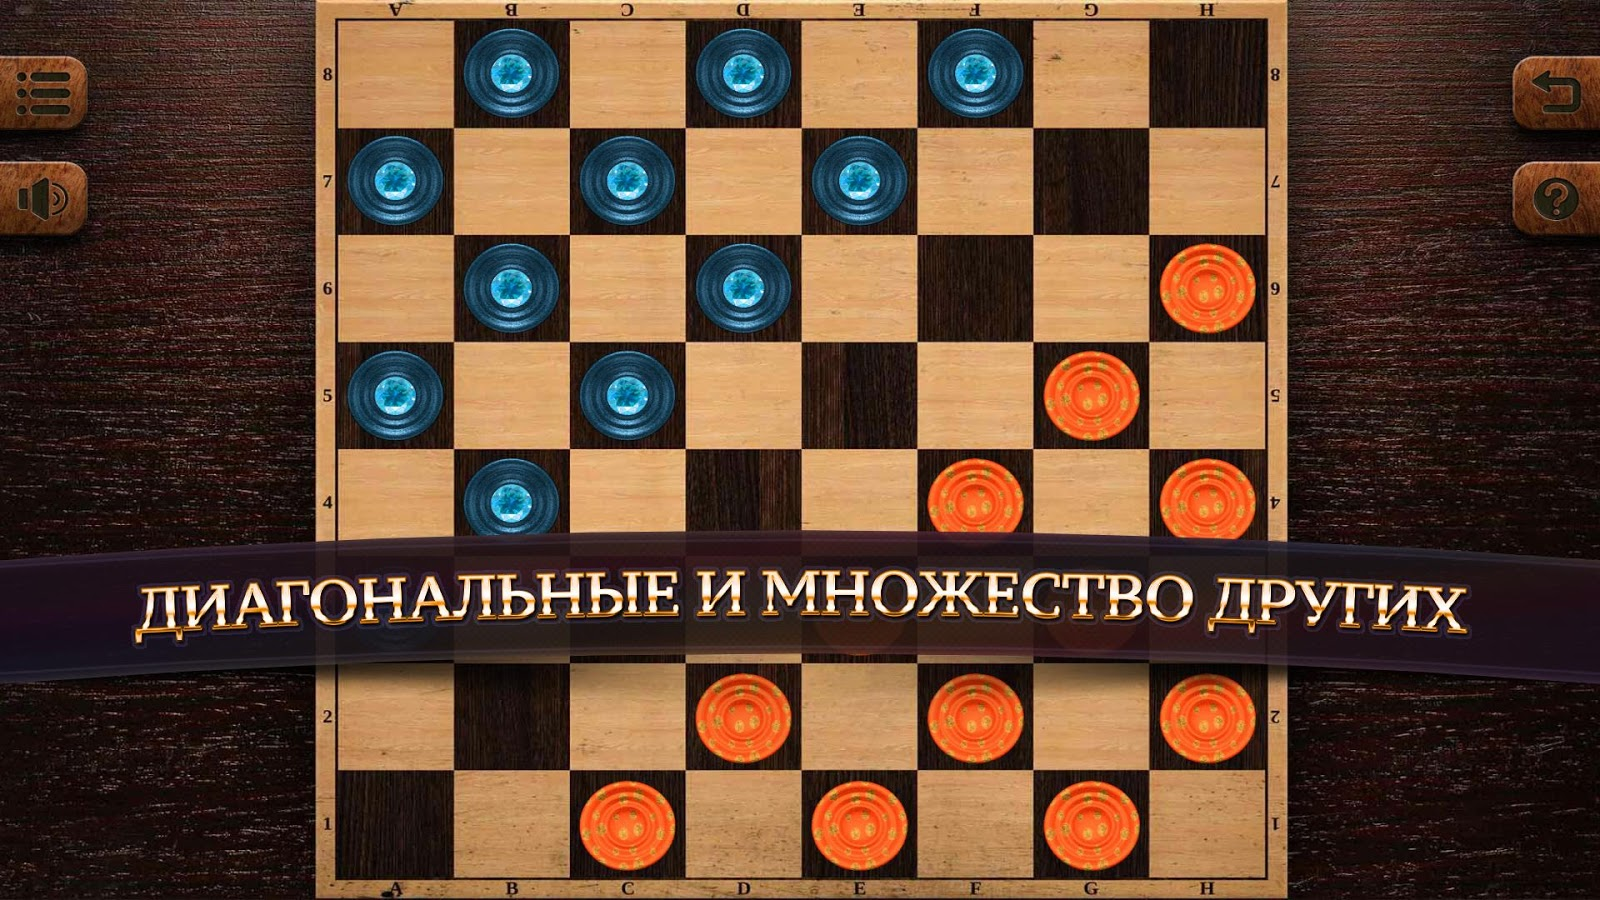 Checkers 2.0.0 APK Download - boardgame.checkers.draughts